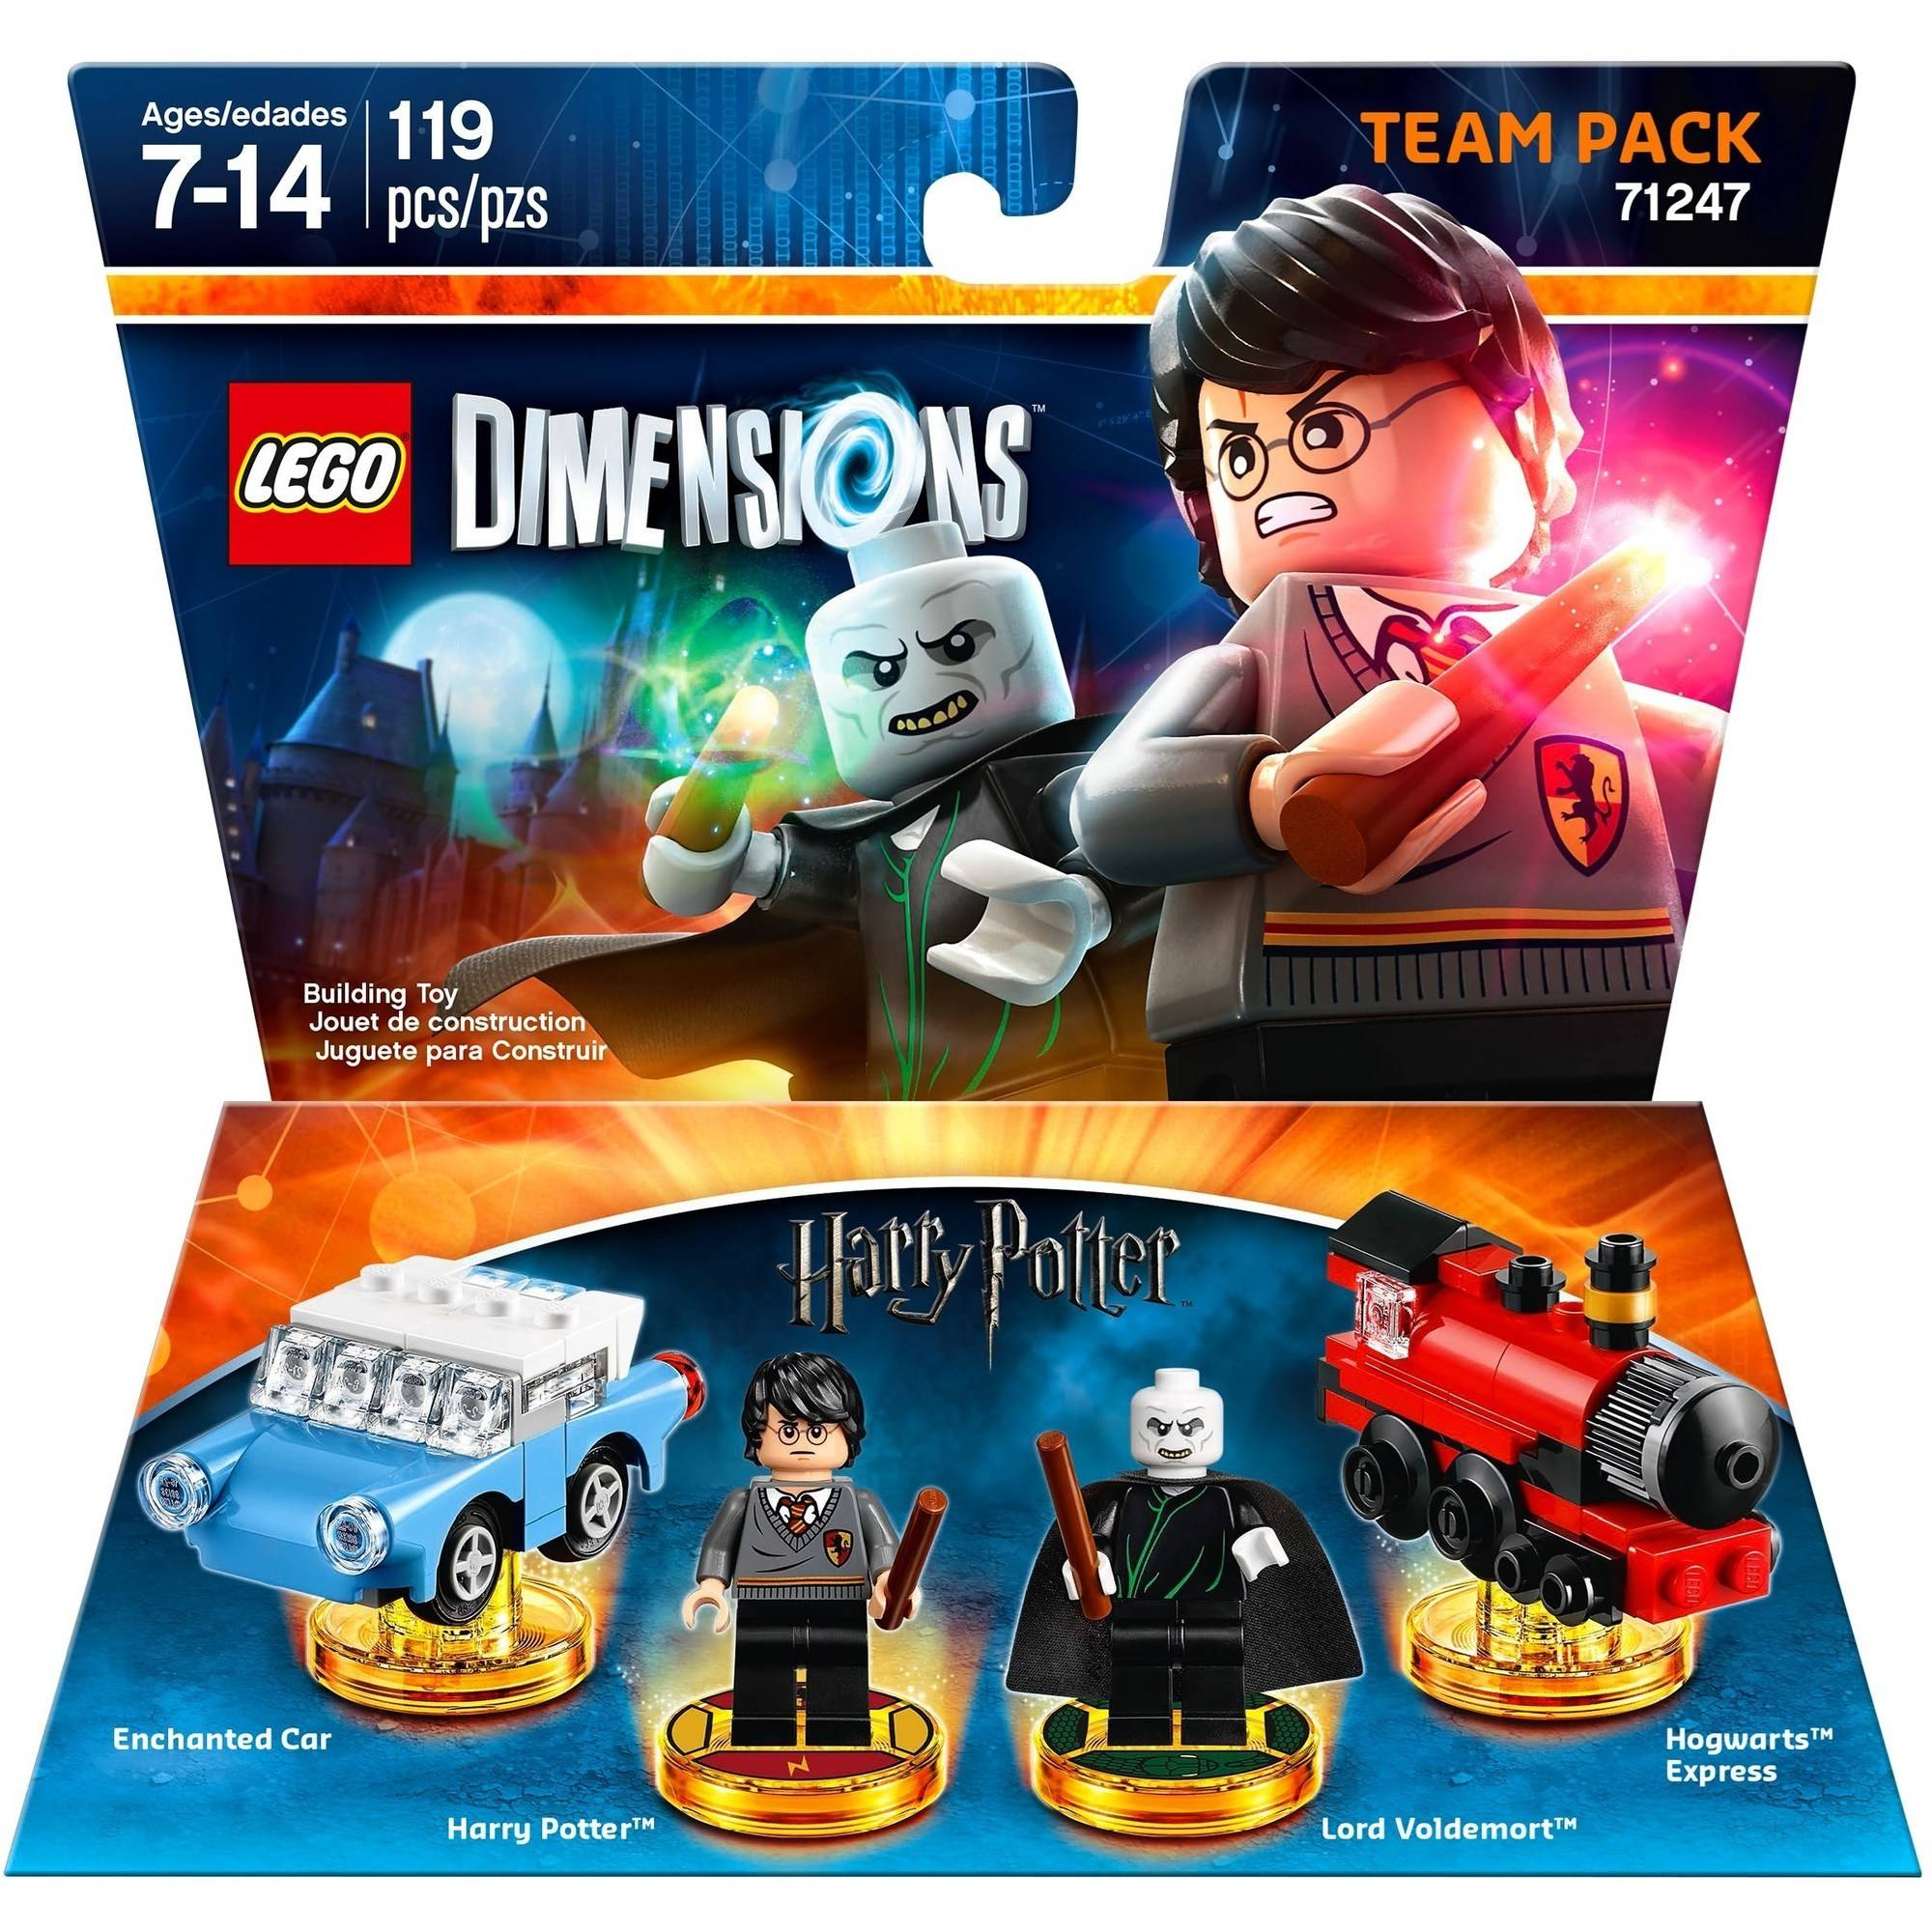 LEGO Dimensions Harry Potter Team Pack (Universal)